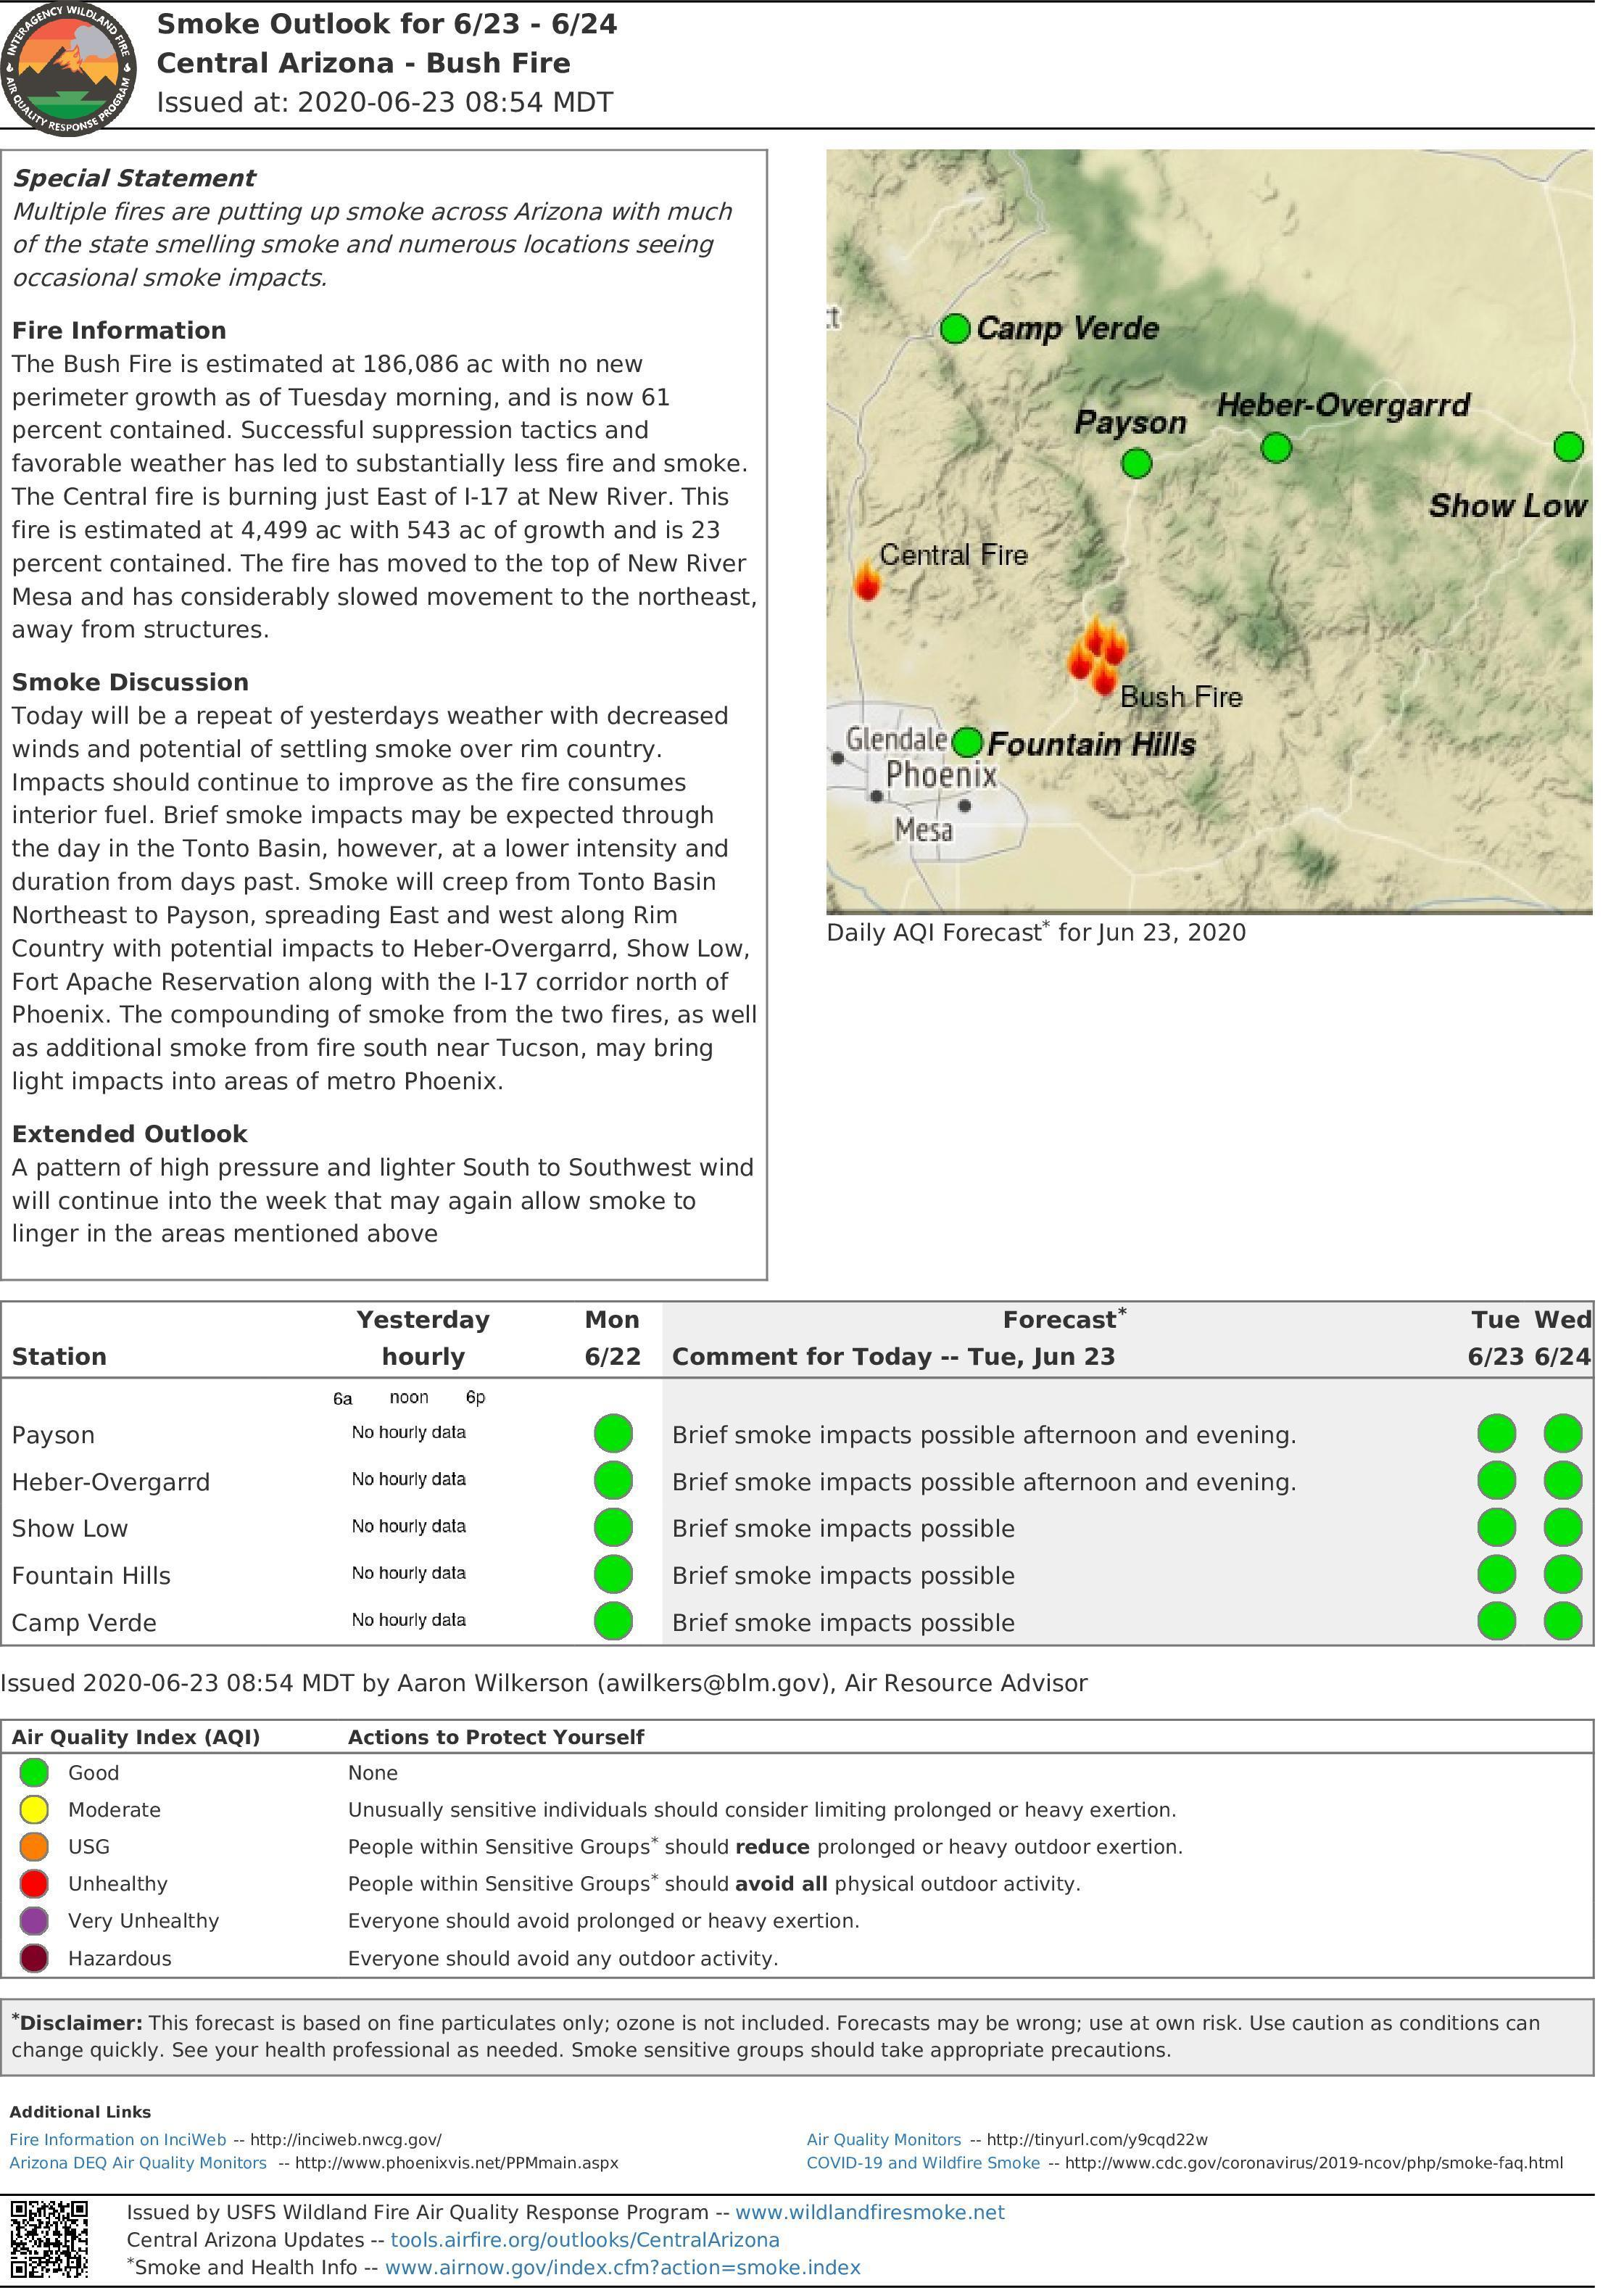 Smoke Report for the Bush and Central Fires for June 23-24. A pdf of this document is downloadable